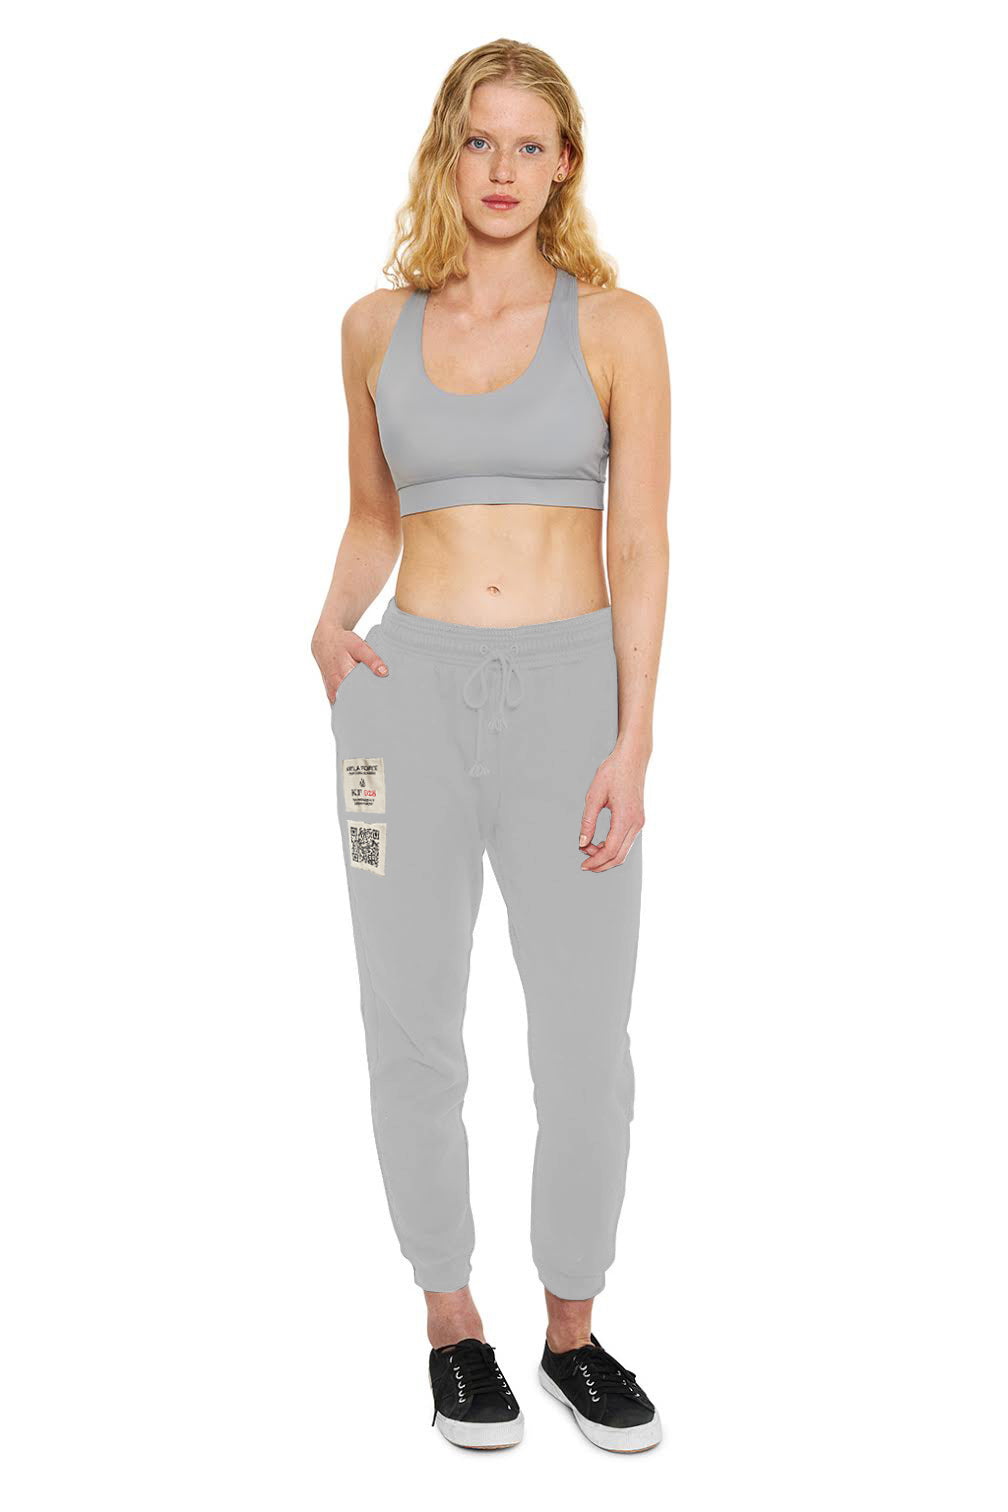 KATLA FORCE SWEATPANTS